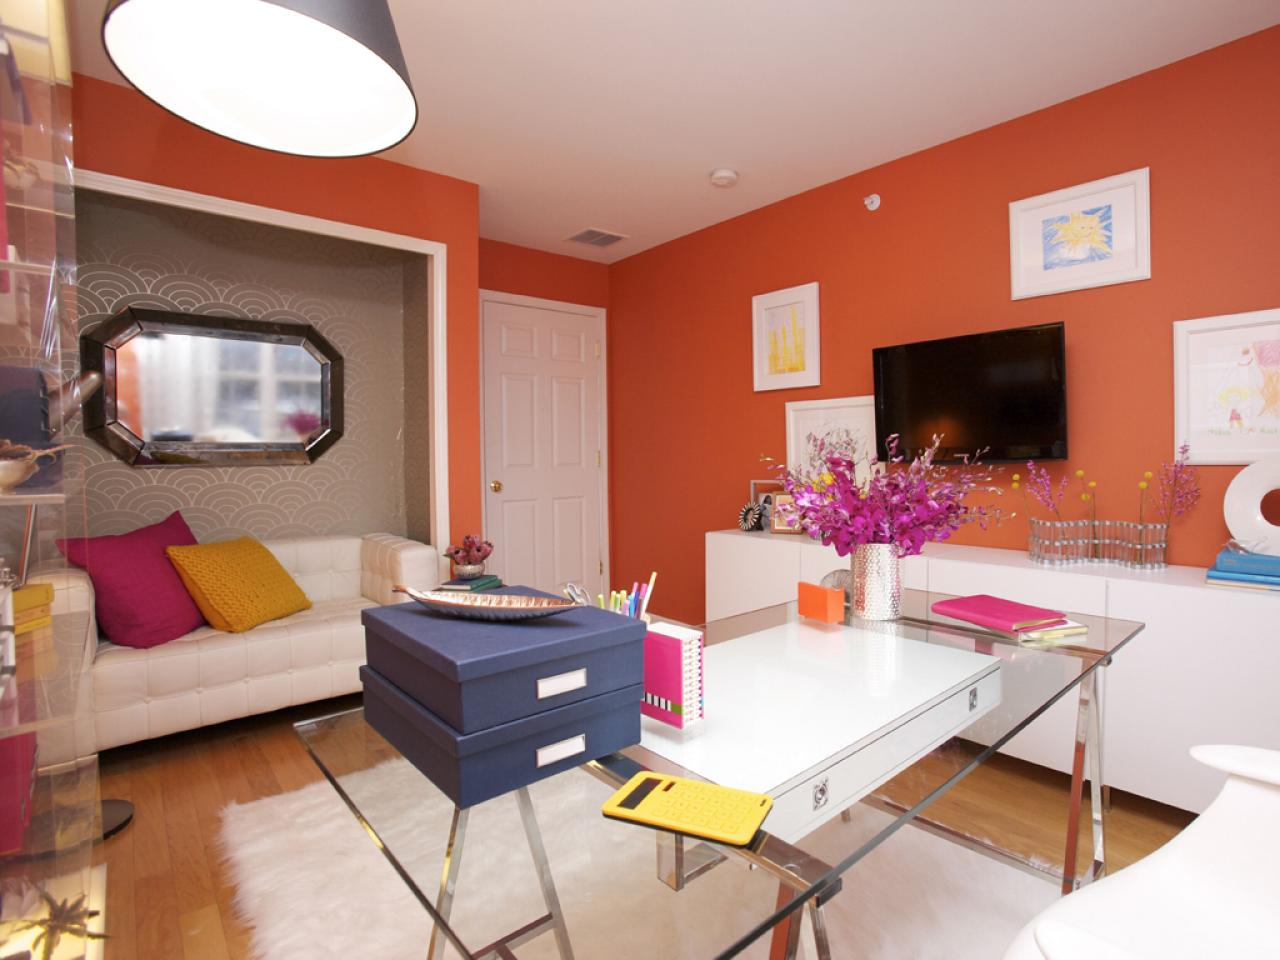 Bright and bold orange office with a cream leather sofa in an alcove